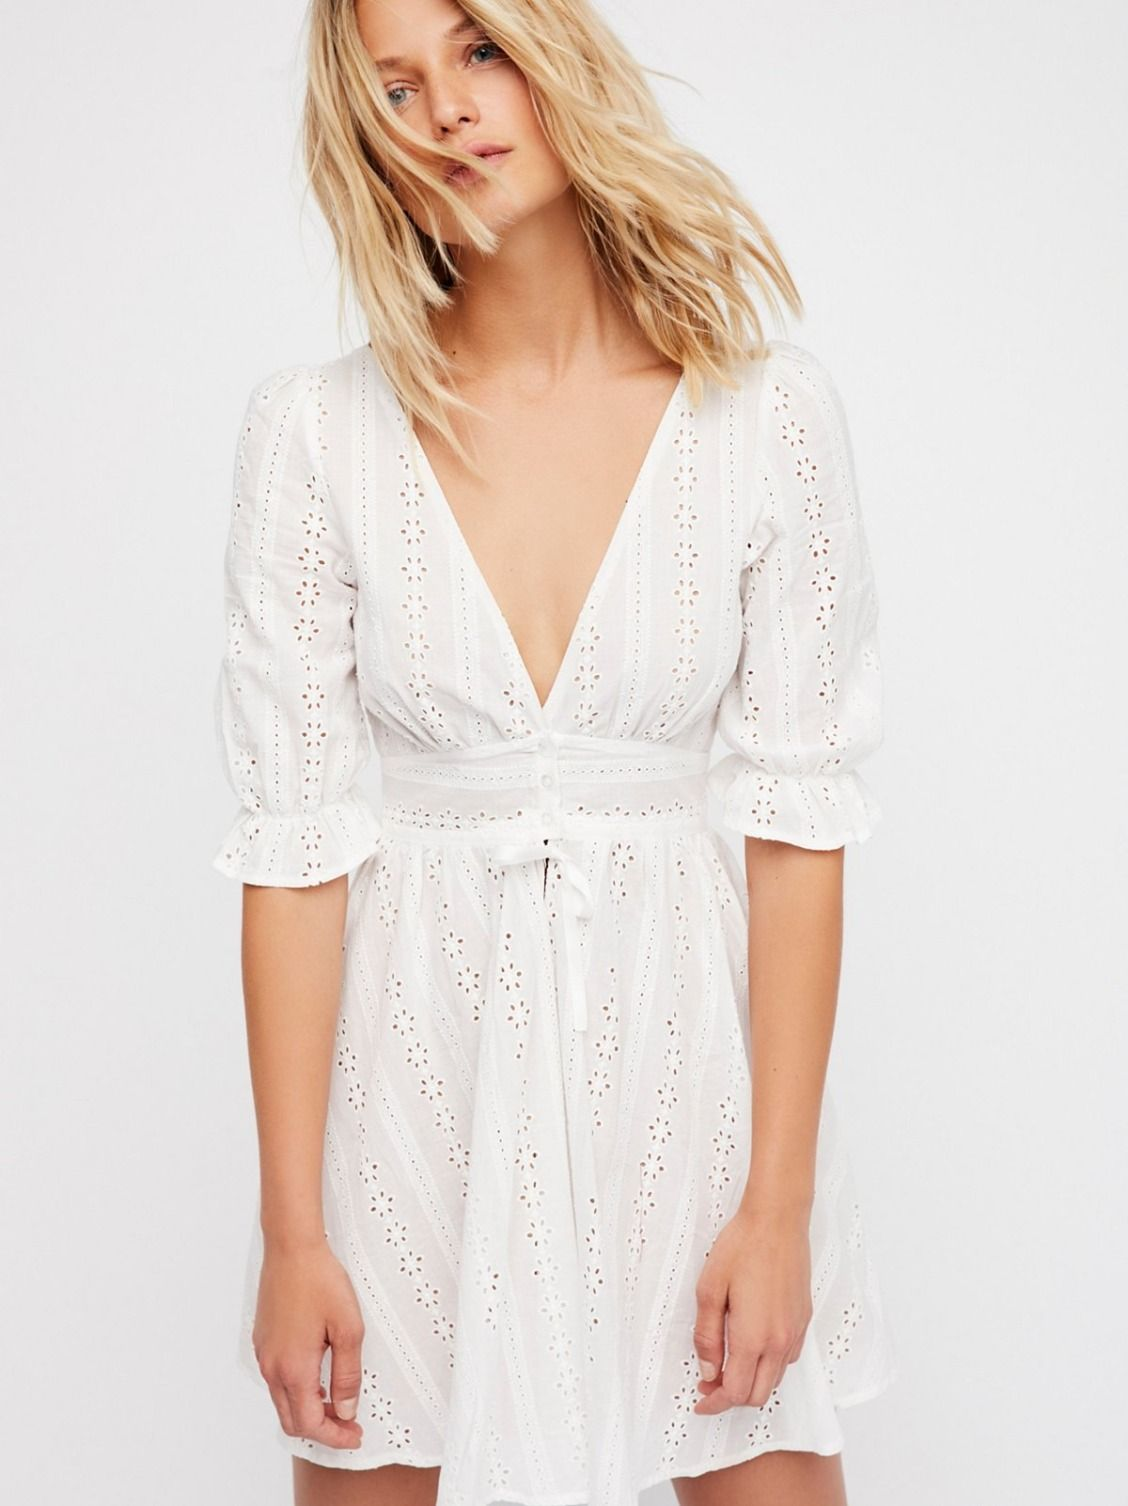 Cotton Eyelet Dress | This light and easy cotton eyelet sundress is the sweetest mini dress featuring a puff sleeves with ruffle trim.  * Plunging neckline * Center button closures * Decorative tie detail * Full skirt * Fitted silhouette * Lined